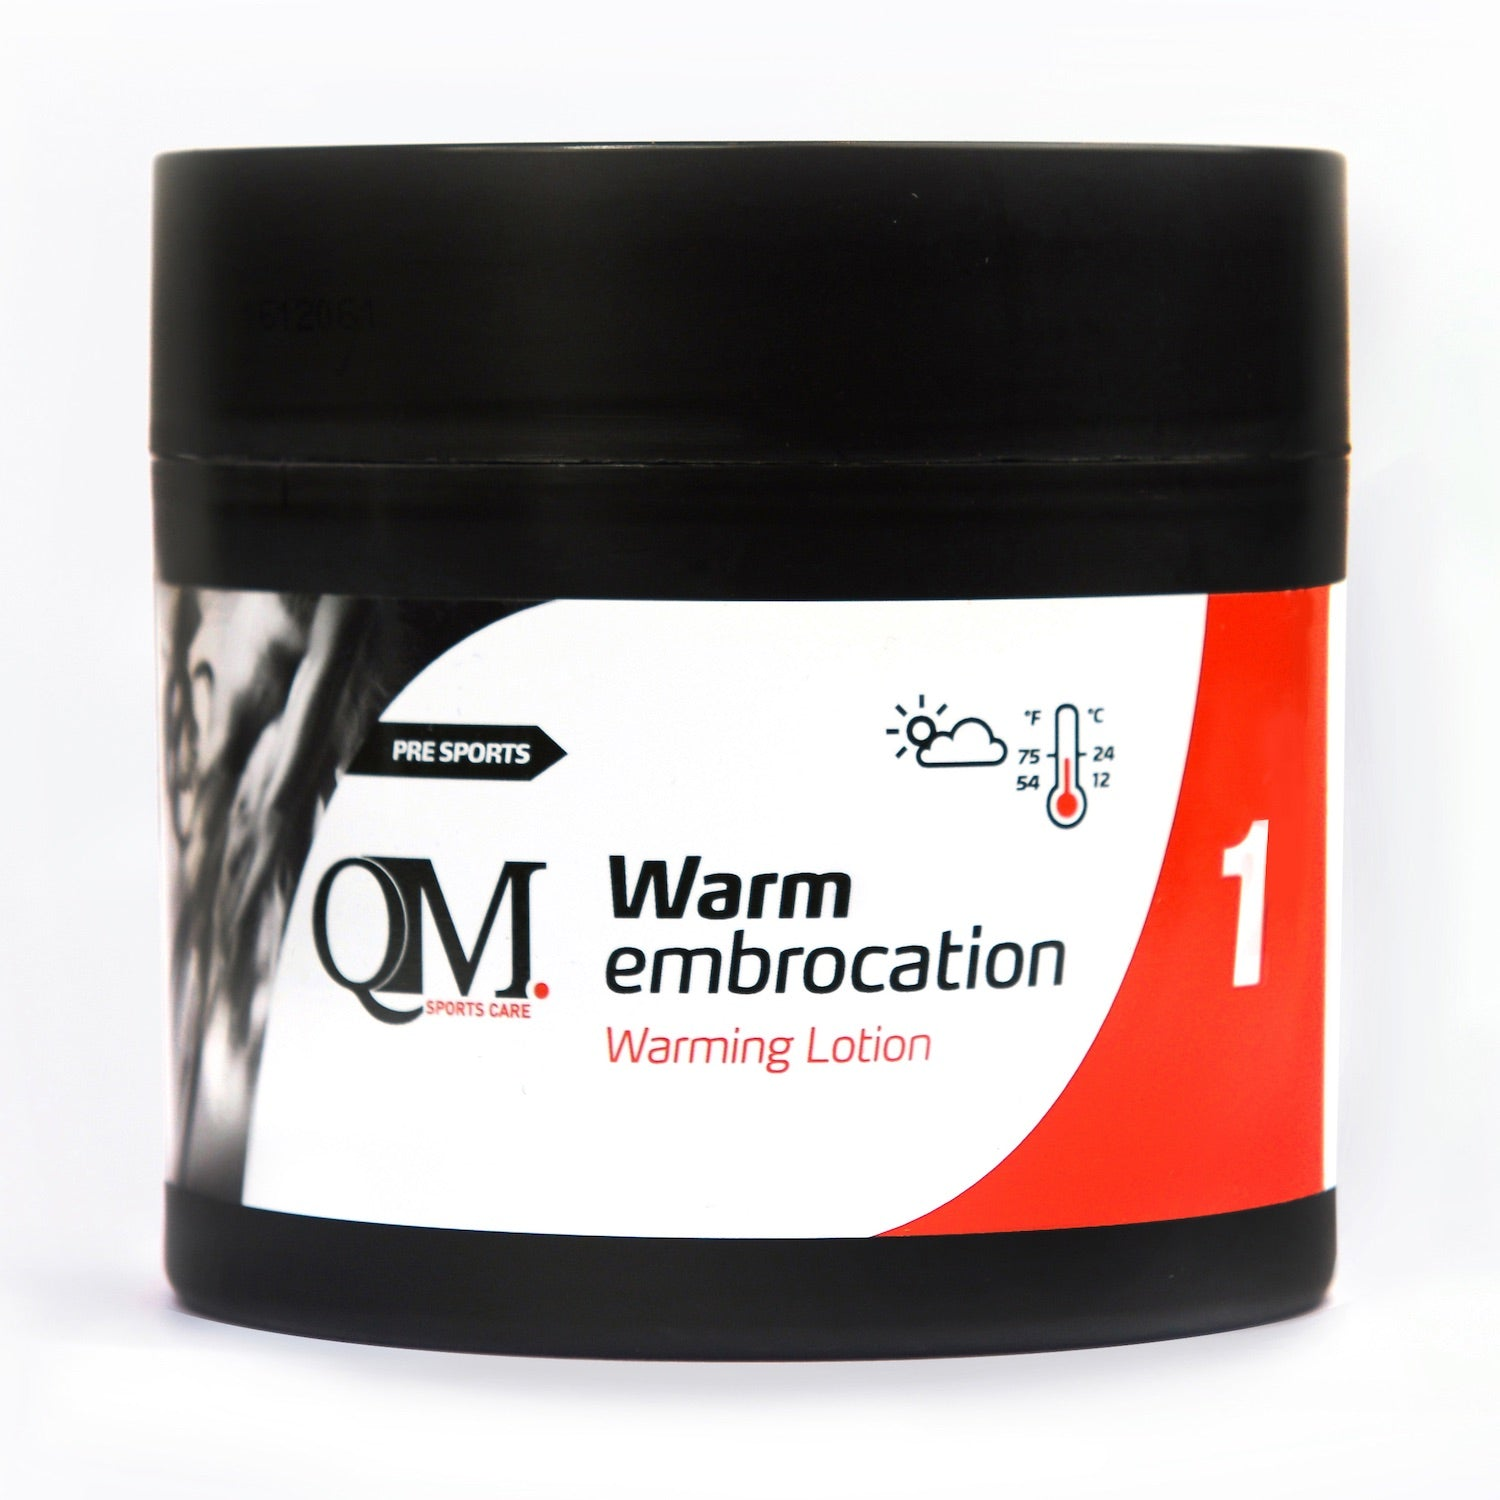 QM Sports Care Embrocation Lotion - RideCX cyclocross store